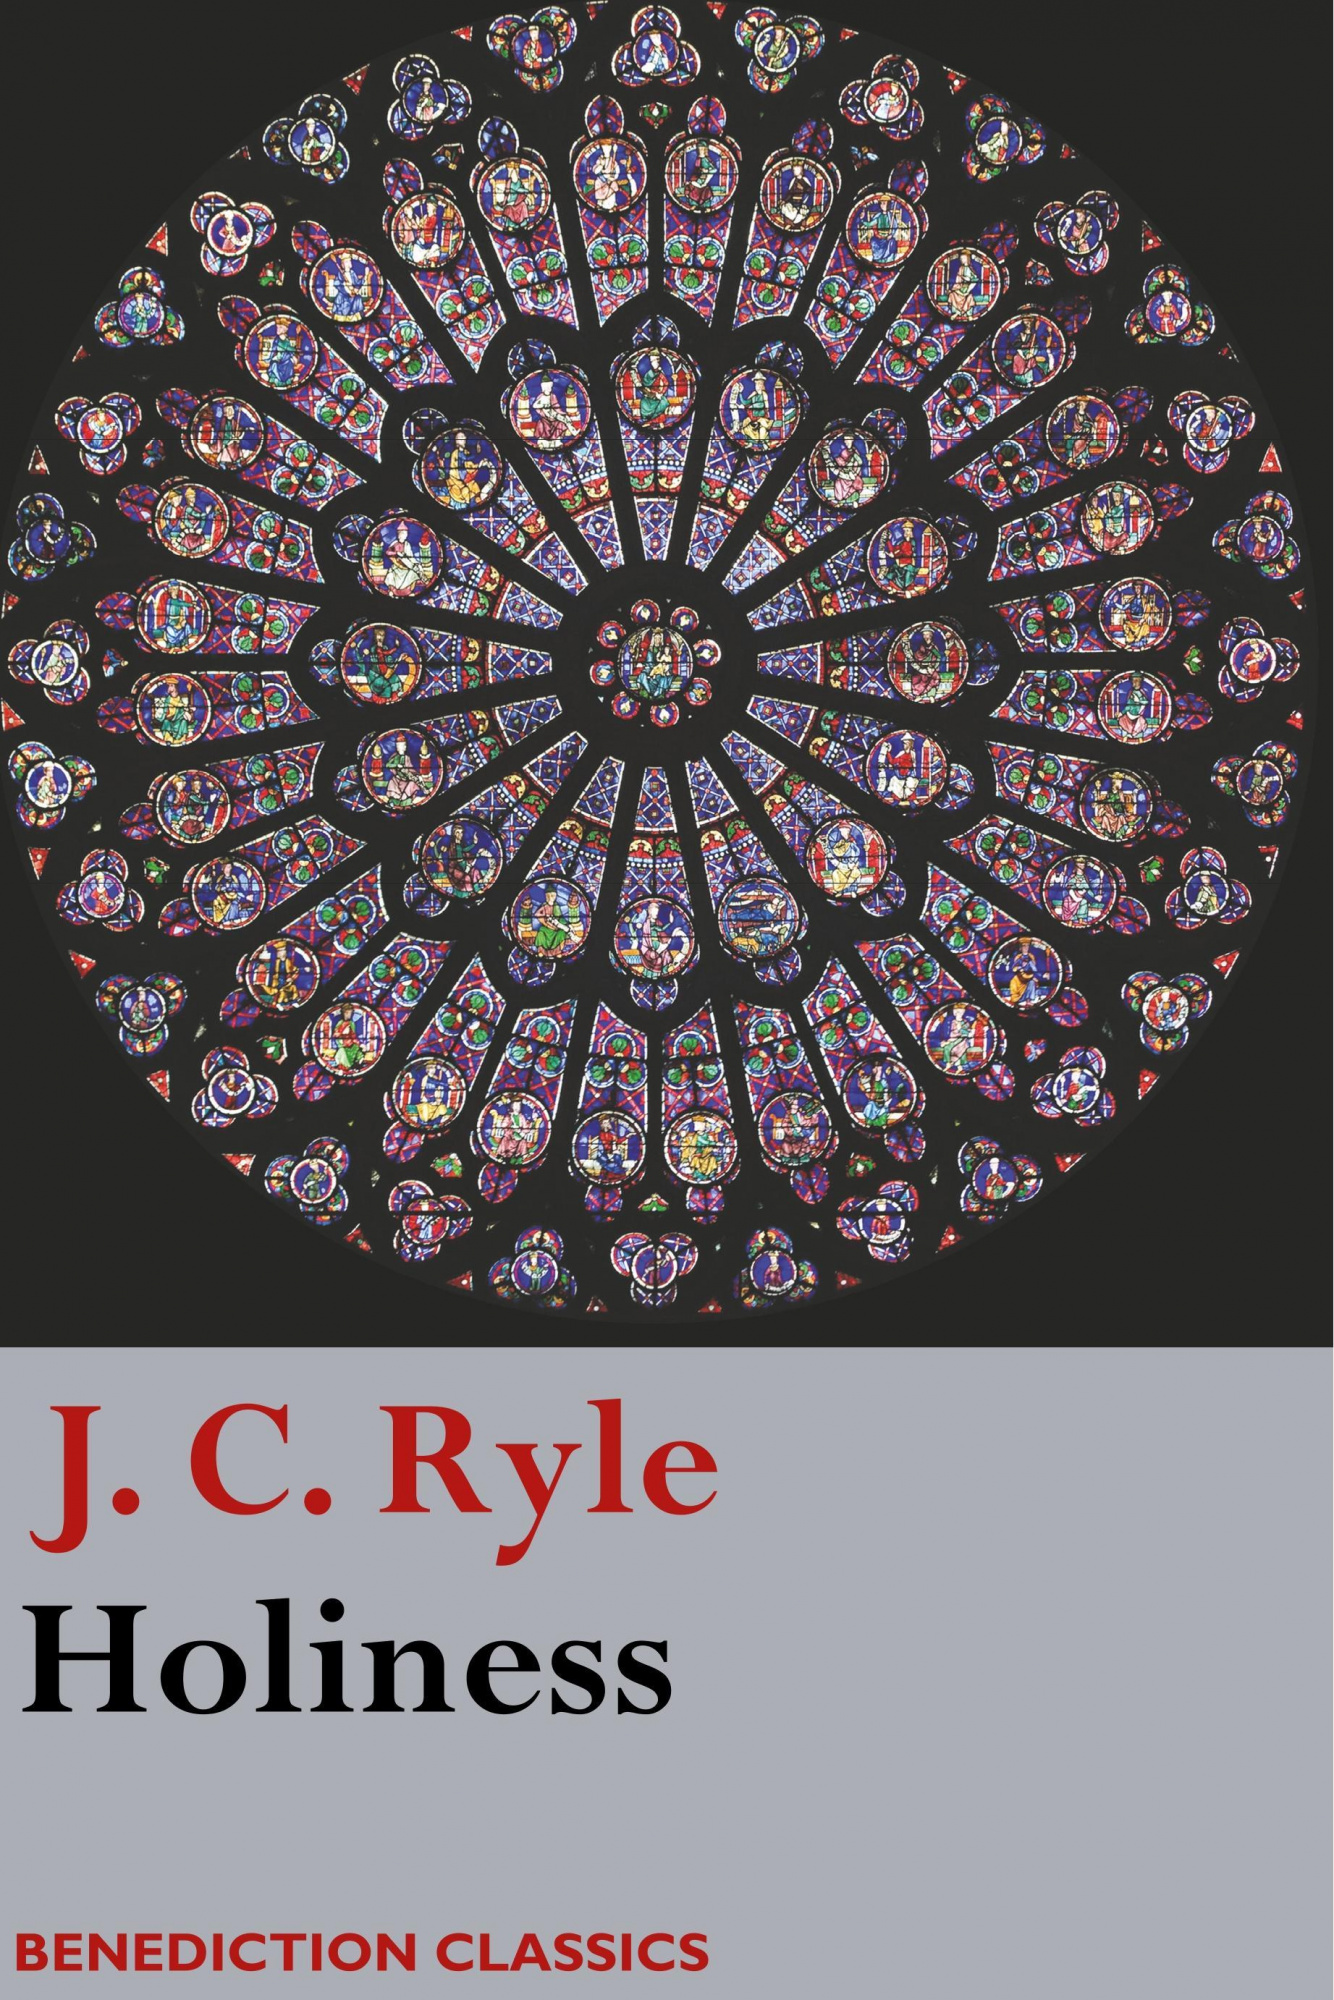 Holiness by J. C. Ryle, ISBN: 9781781398524